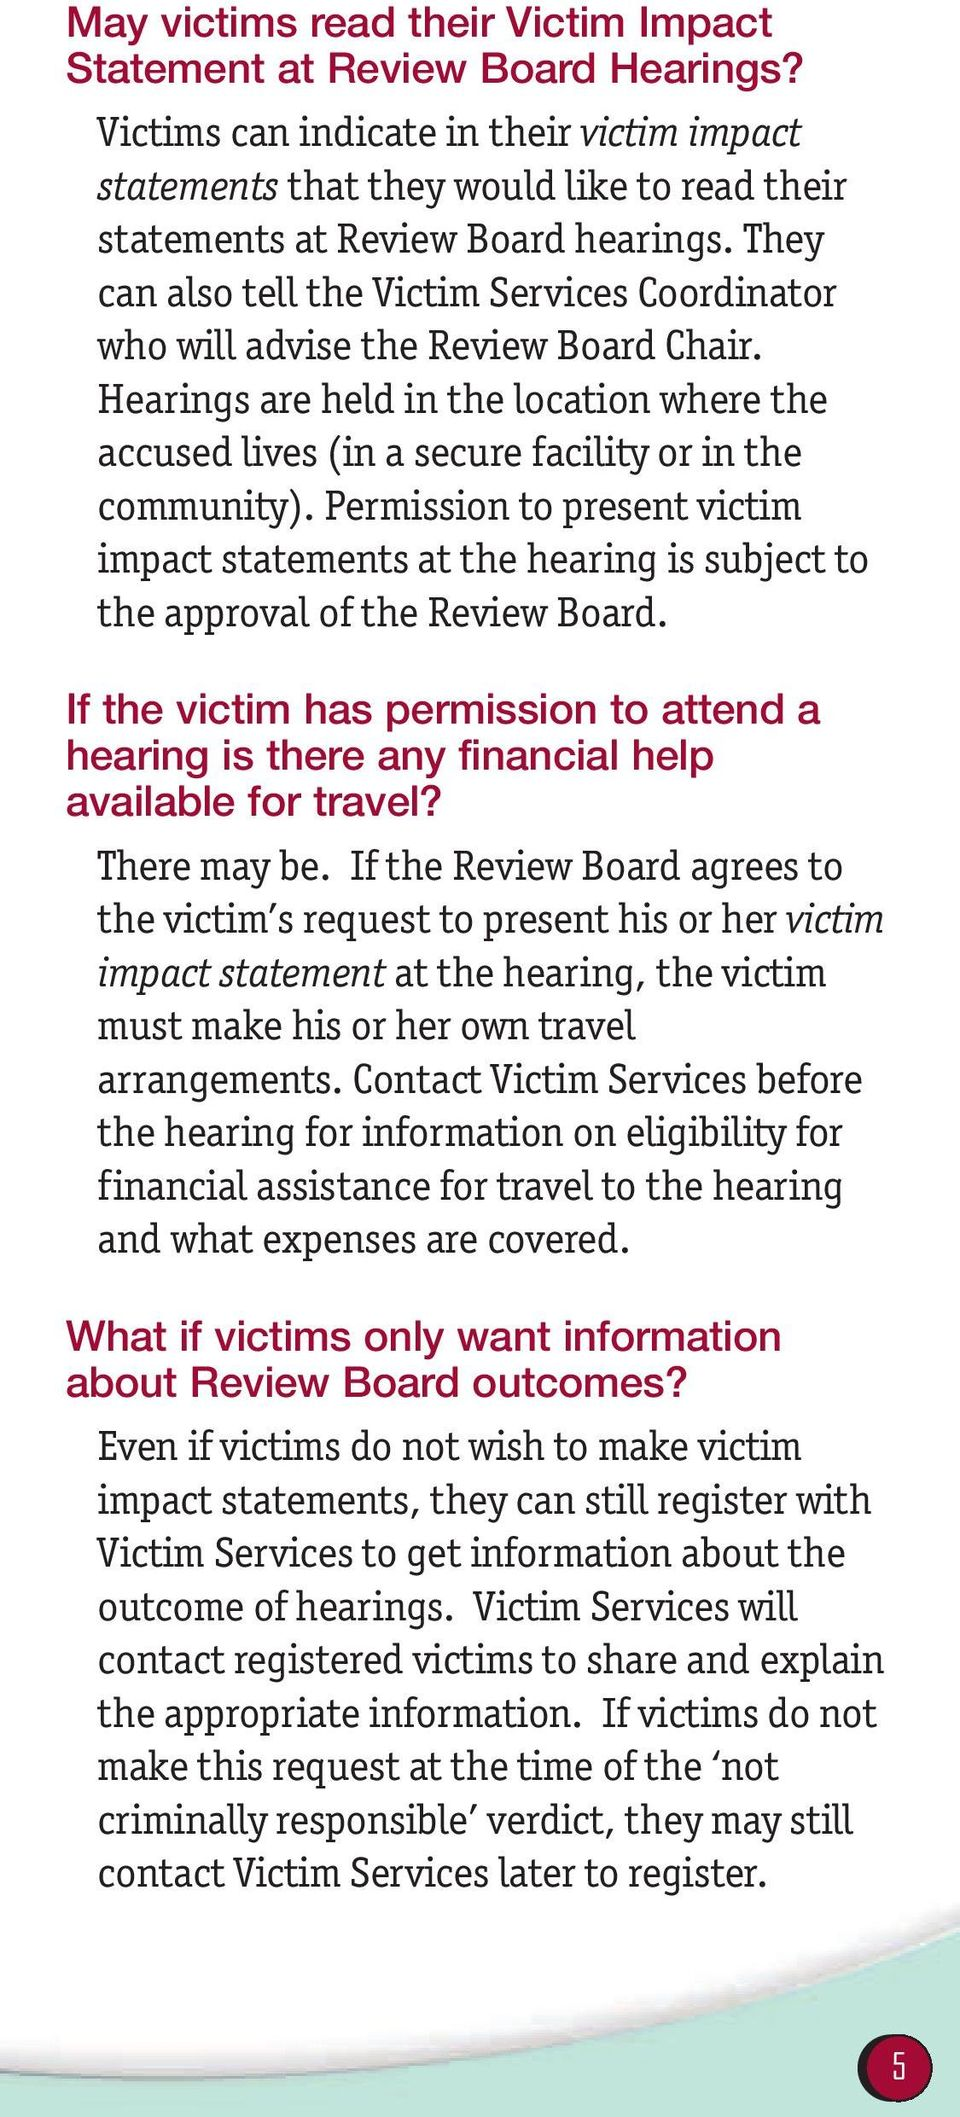 Permission to present victim impact statements at the hearing is subject to the approval of the Review Board.